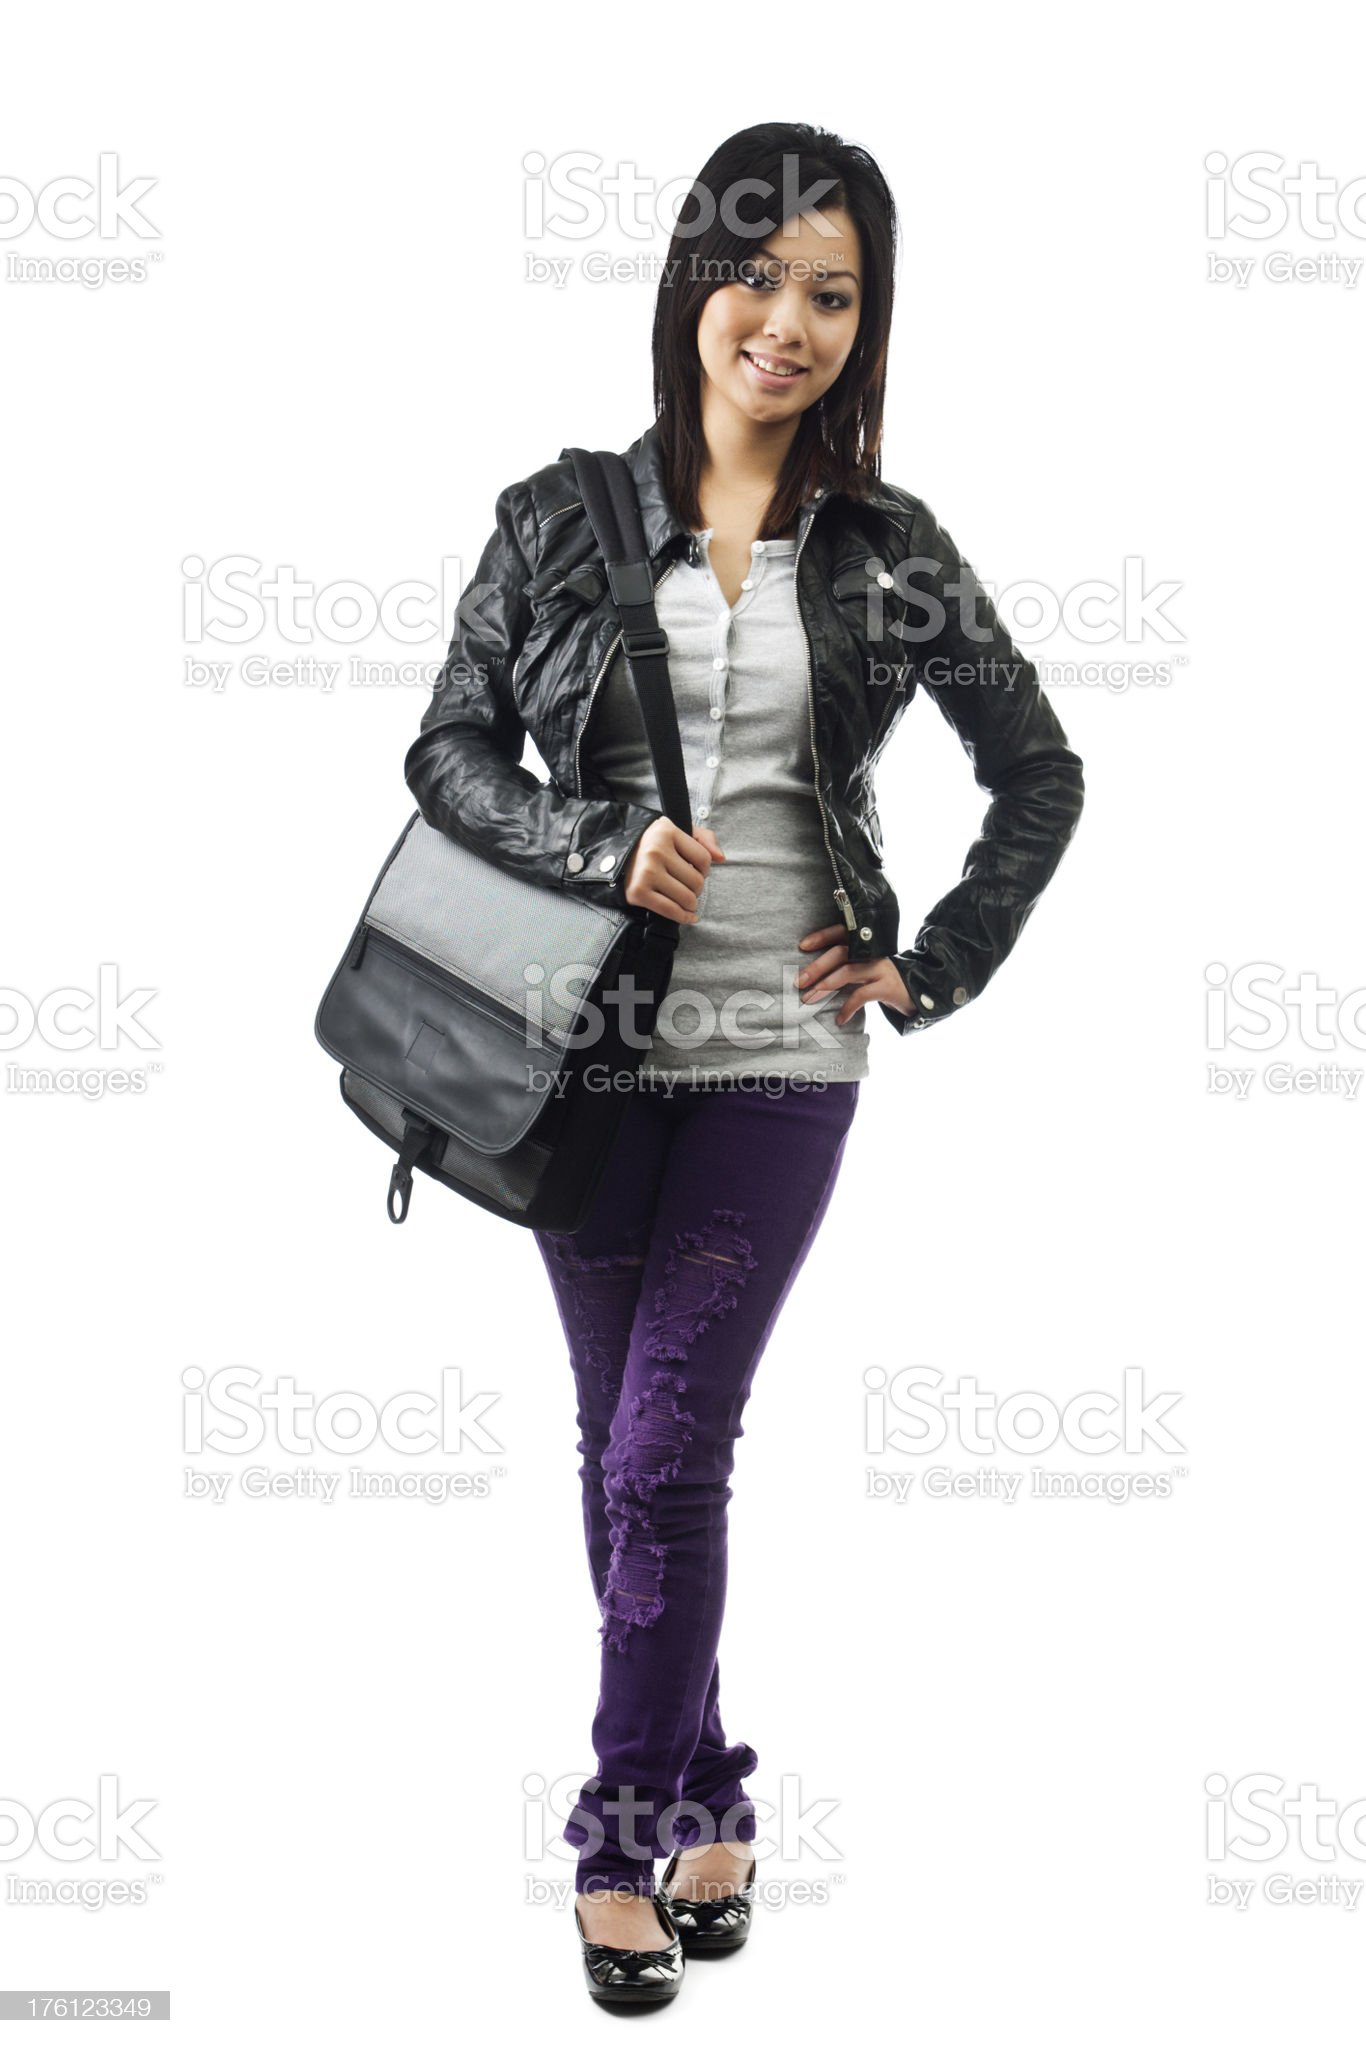 Young Asian Female Student Isolated on White Background royalty-free stock photo